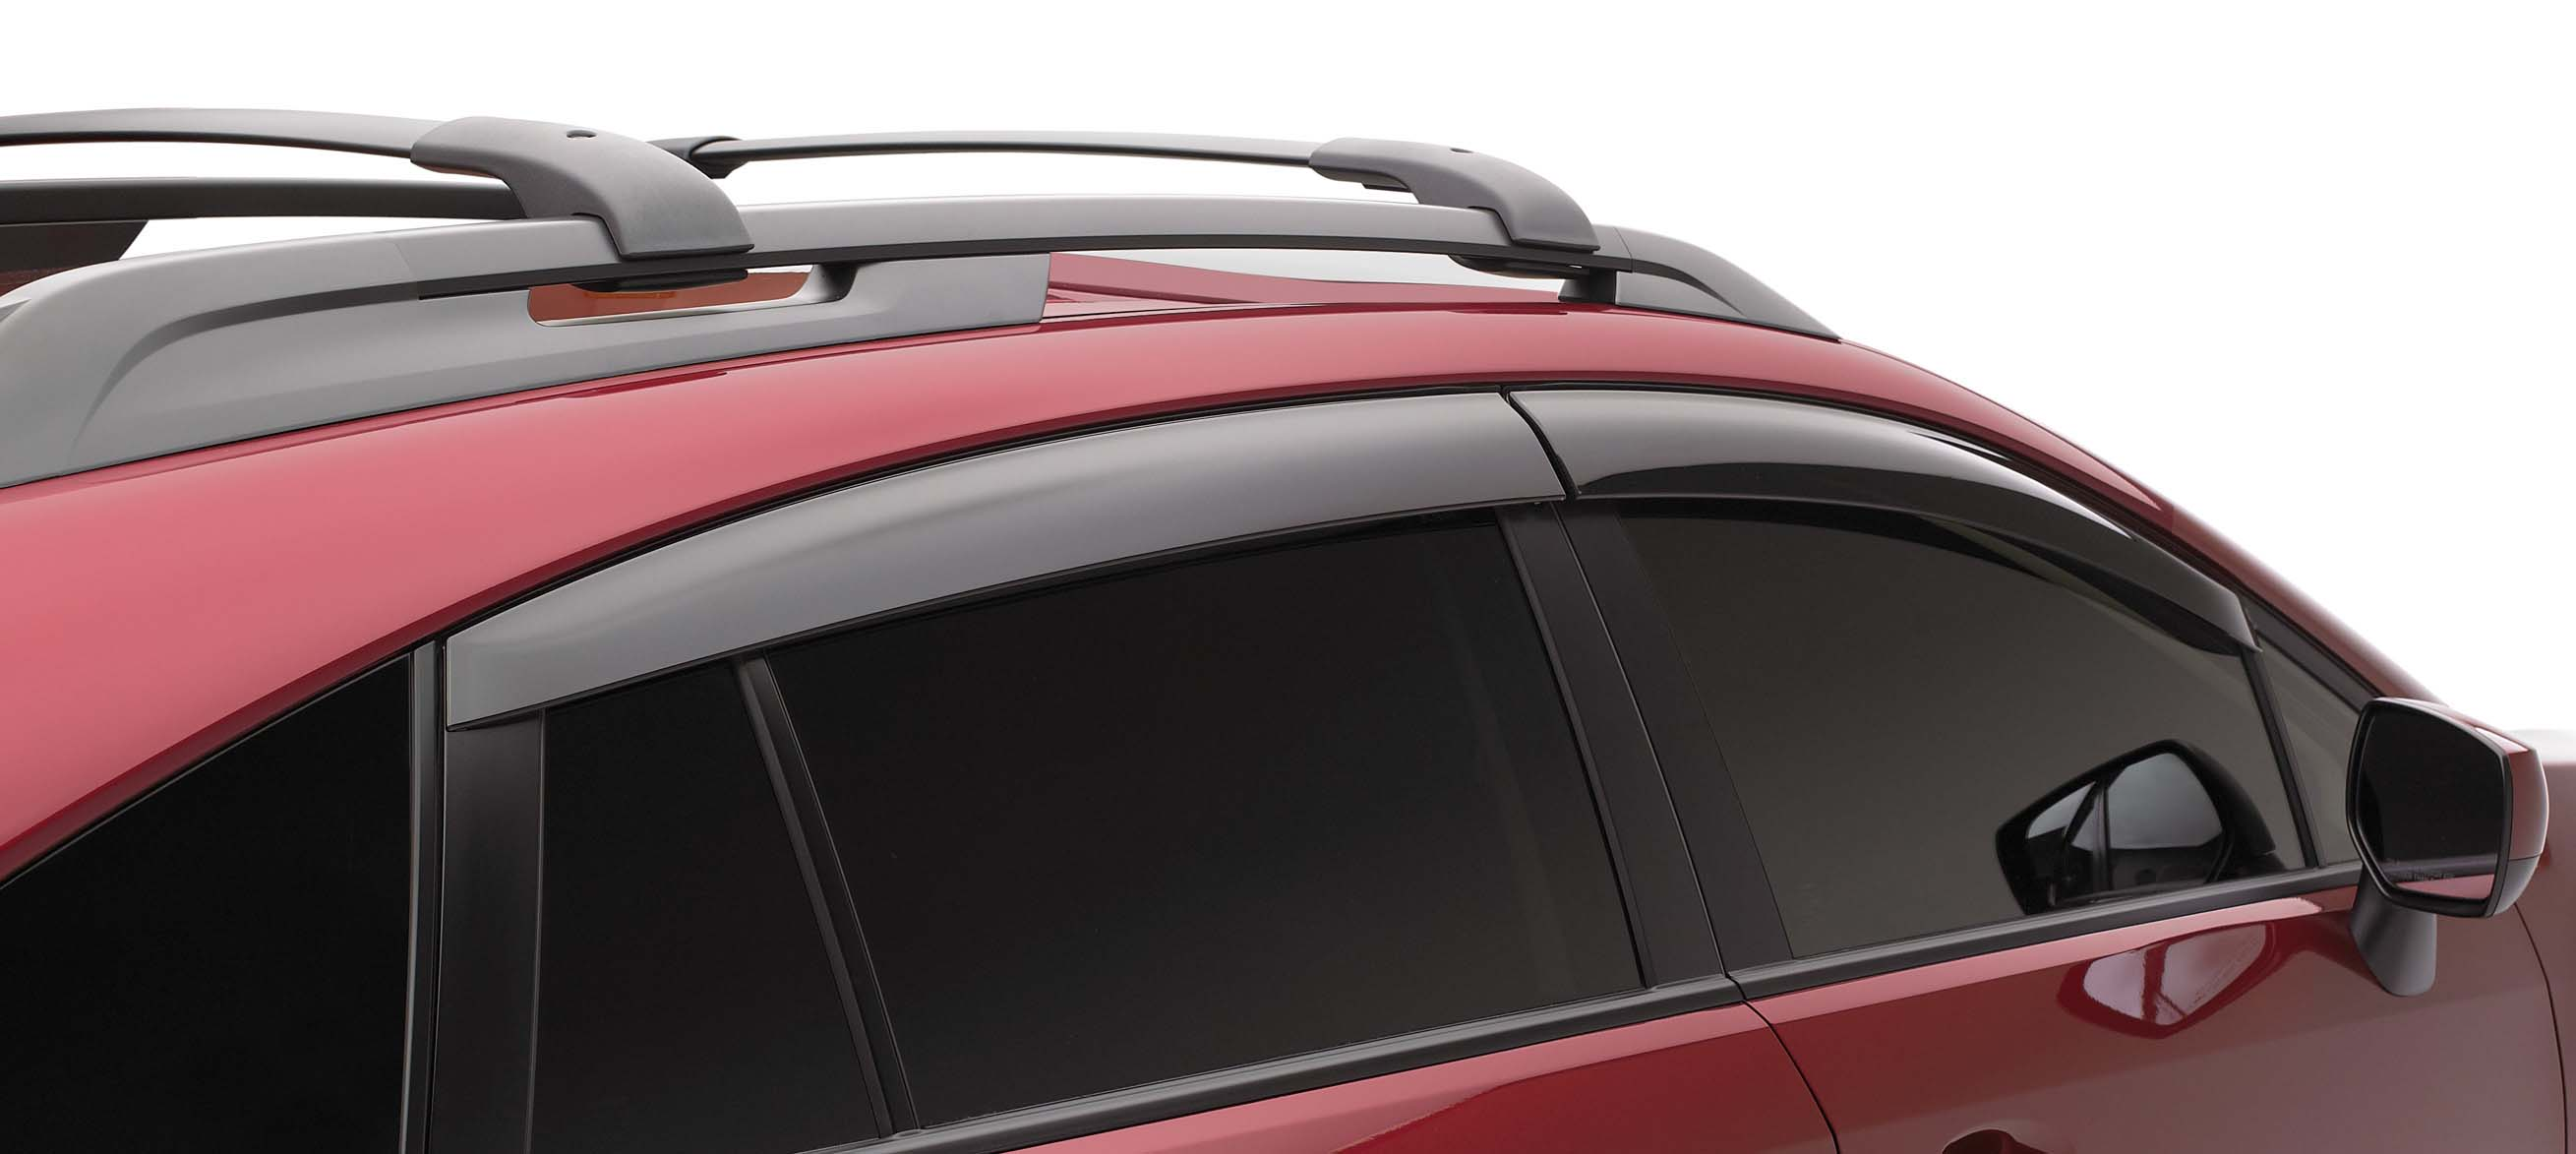 Subaru Crosstrek Side Window Visor Side Window Defl 5 Dr